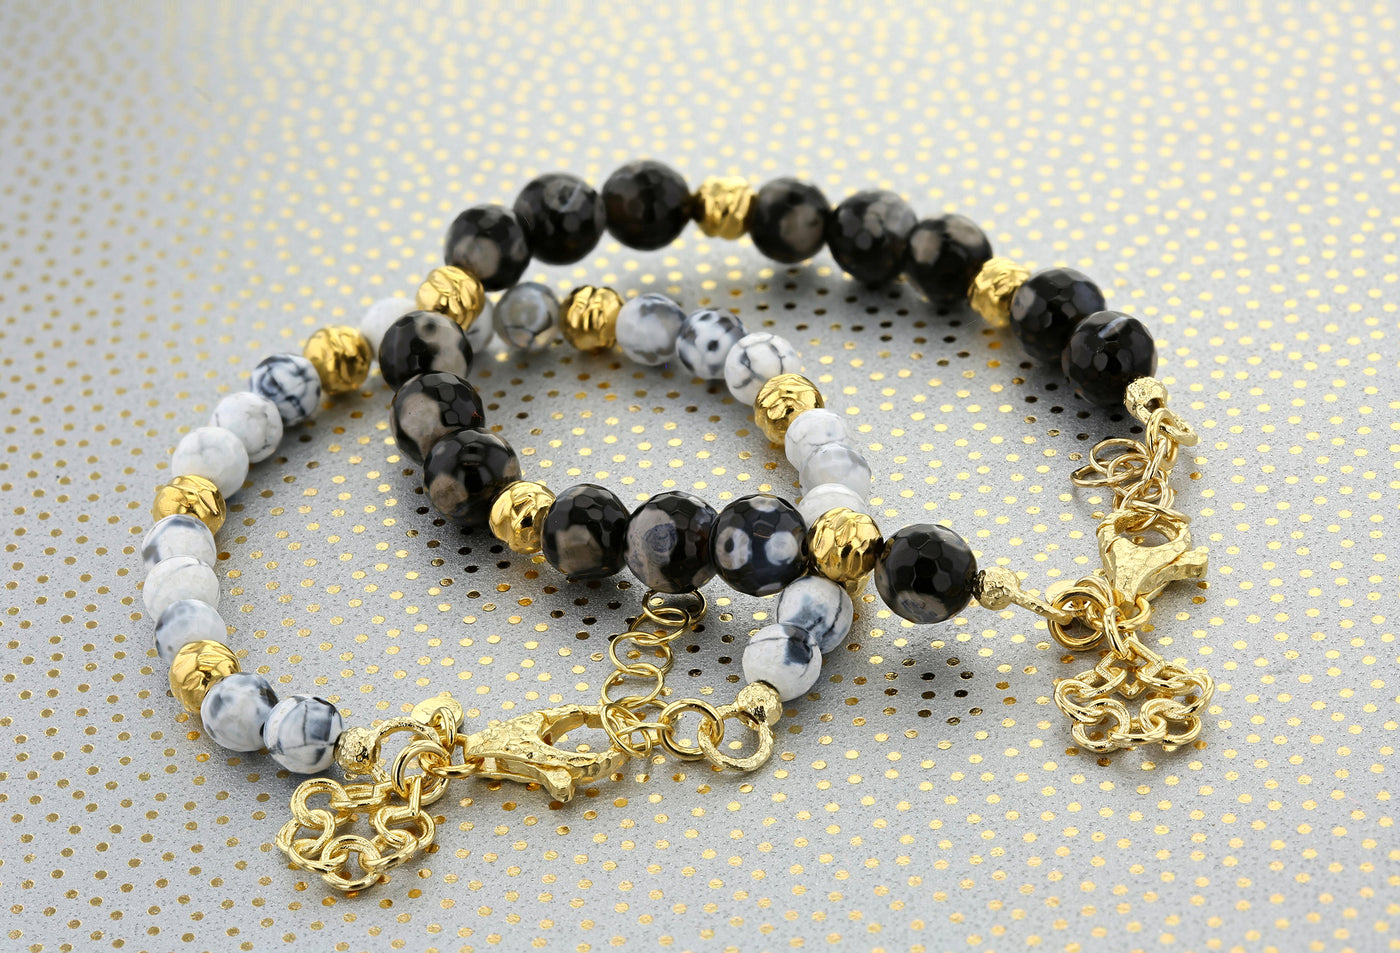 HANDCRAFTED IN ITALY- GEMSTONE BEADED BRACELETS